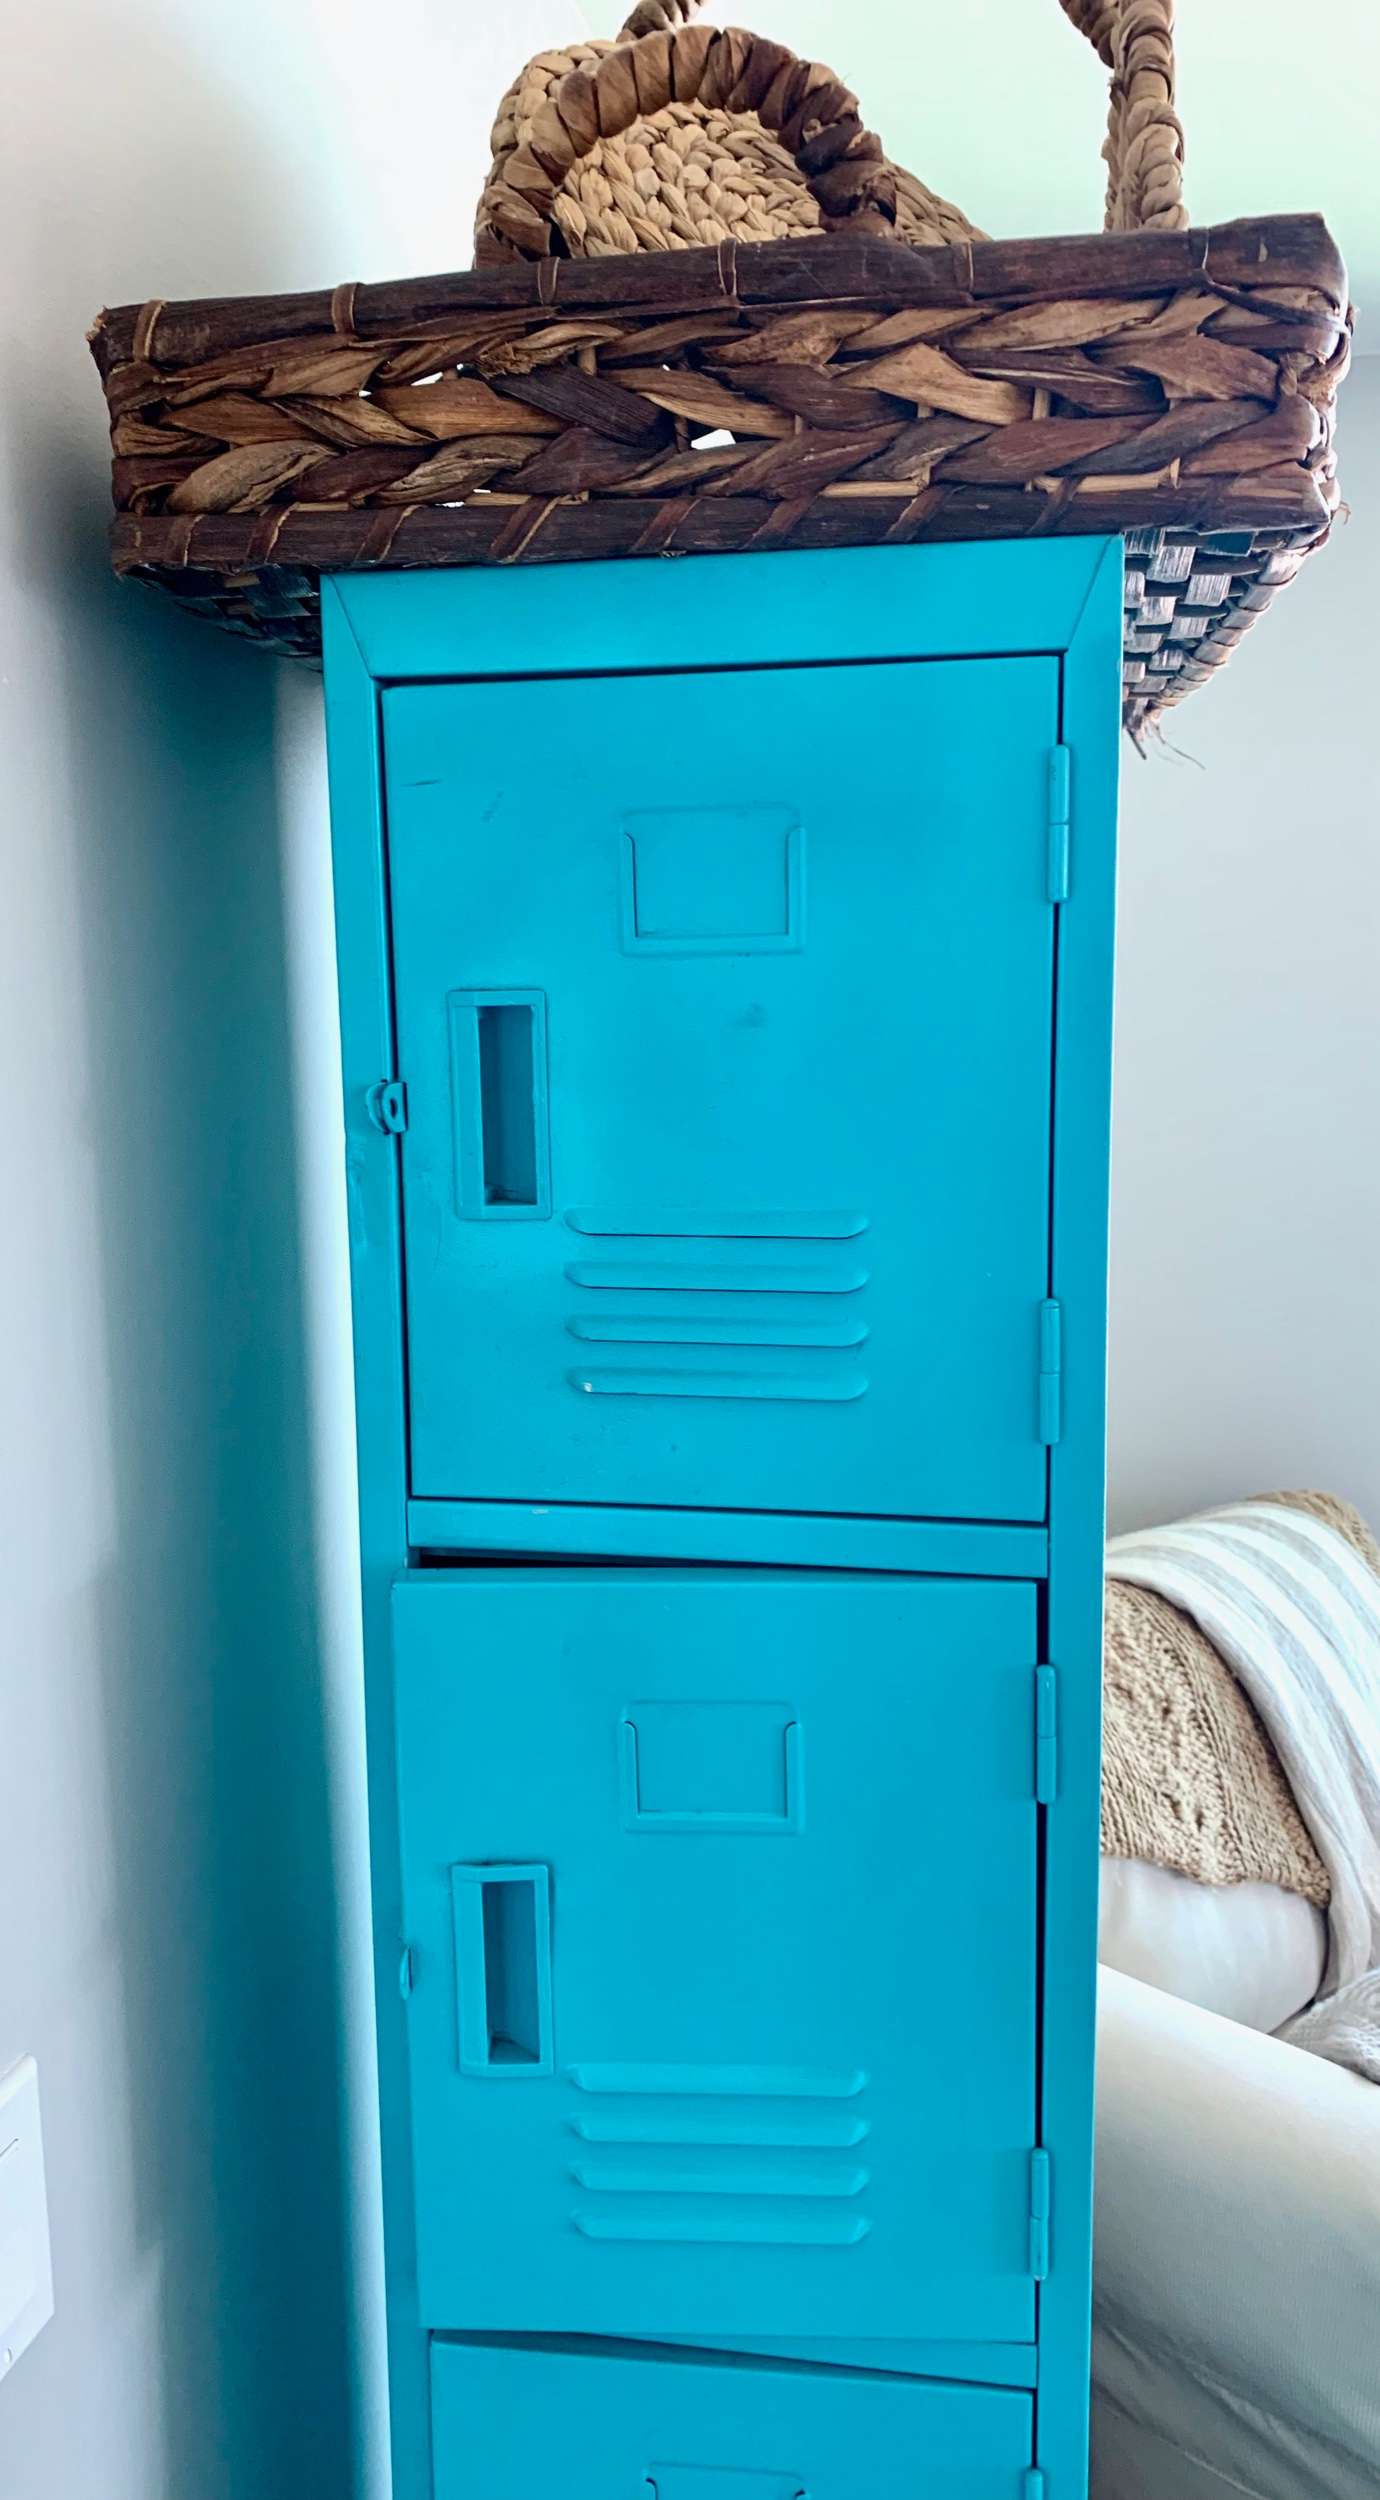 Aqua lockers… Firewood holder turned office supply closet turned pantry… Now what?